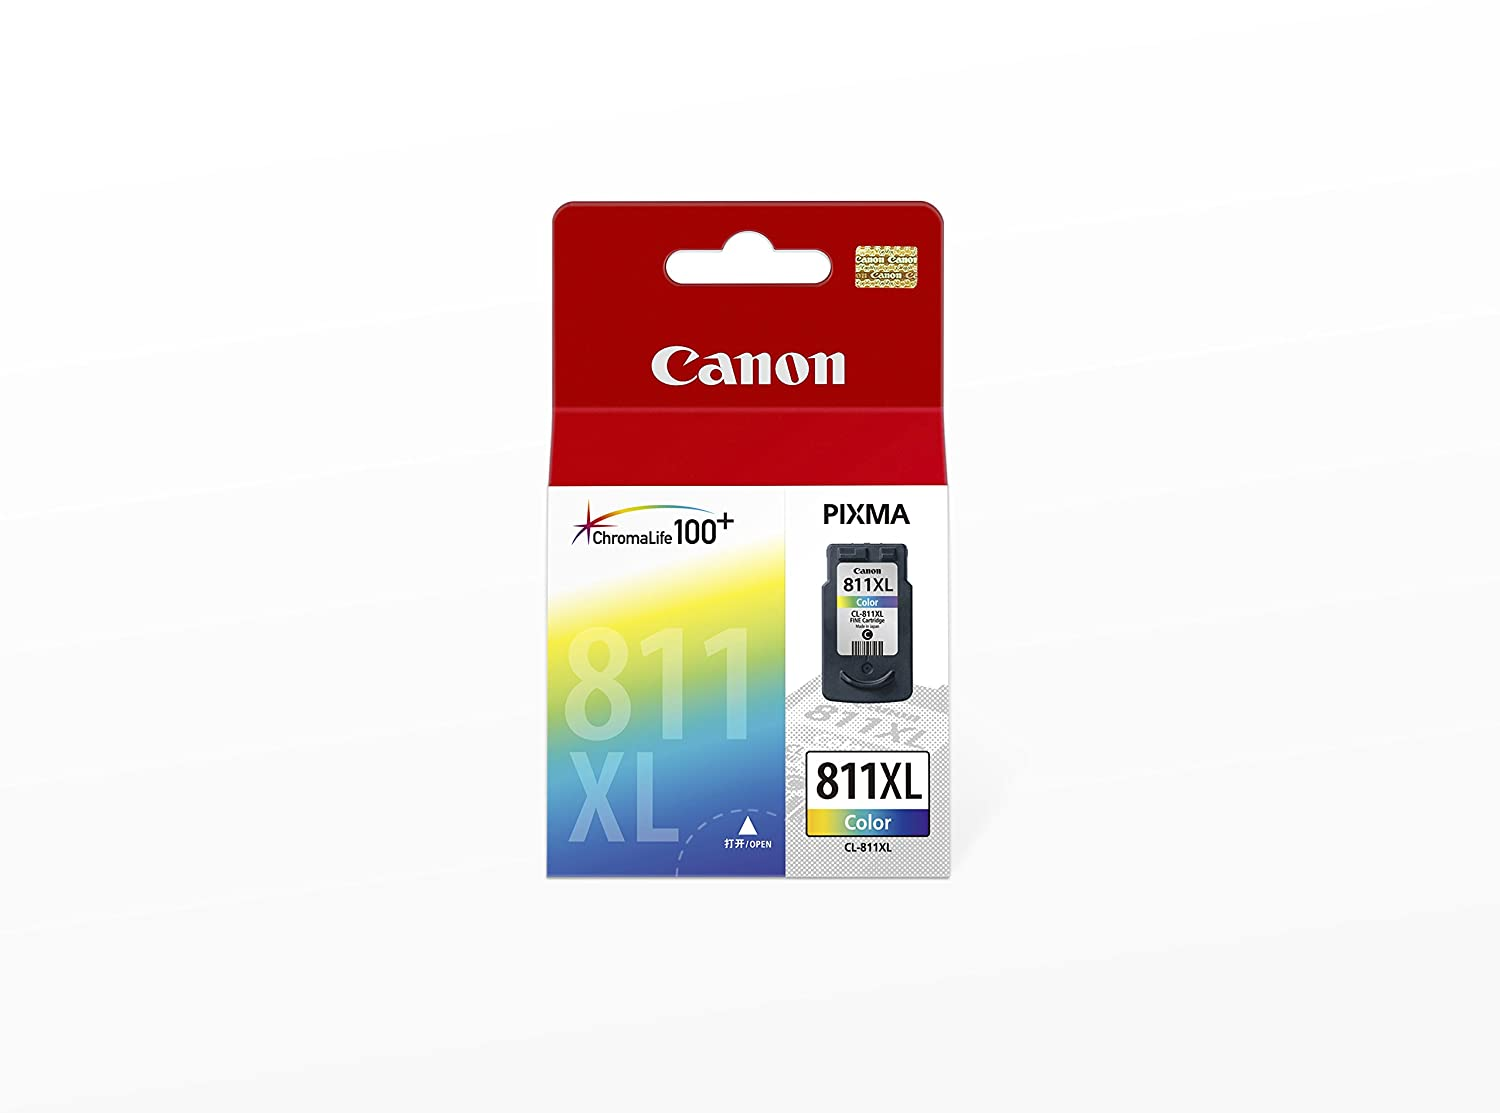 Canon CL 811 Ink Cartridge Color Amazonin Computers Accessories